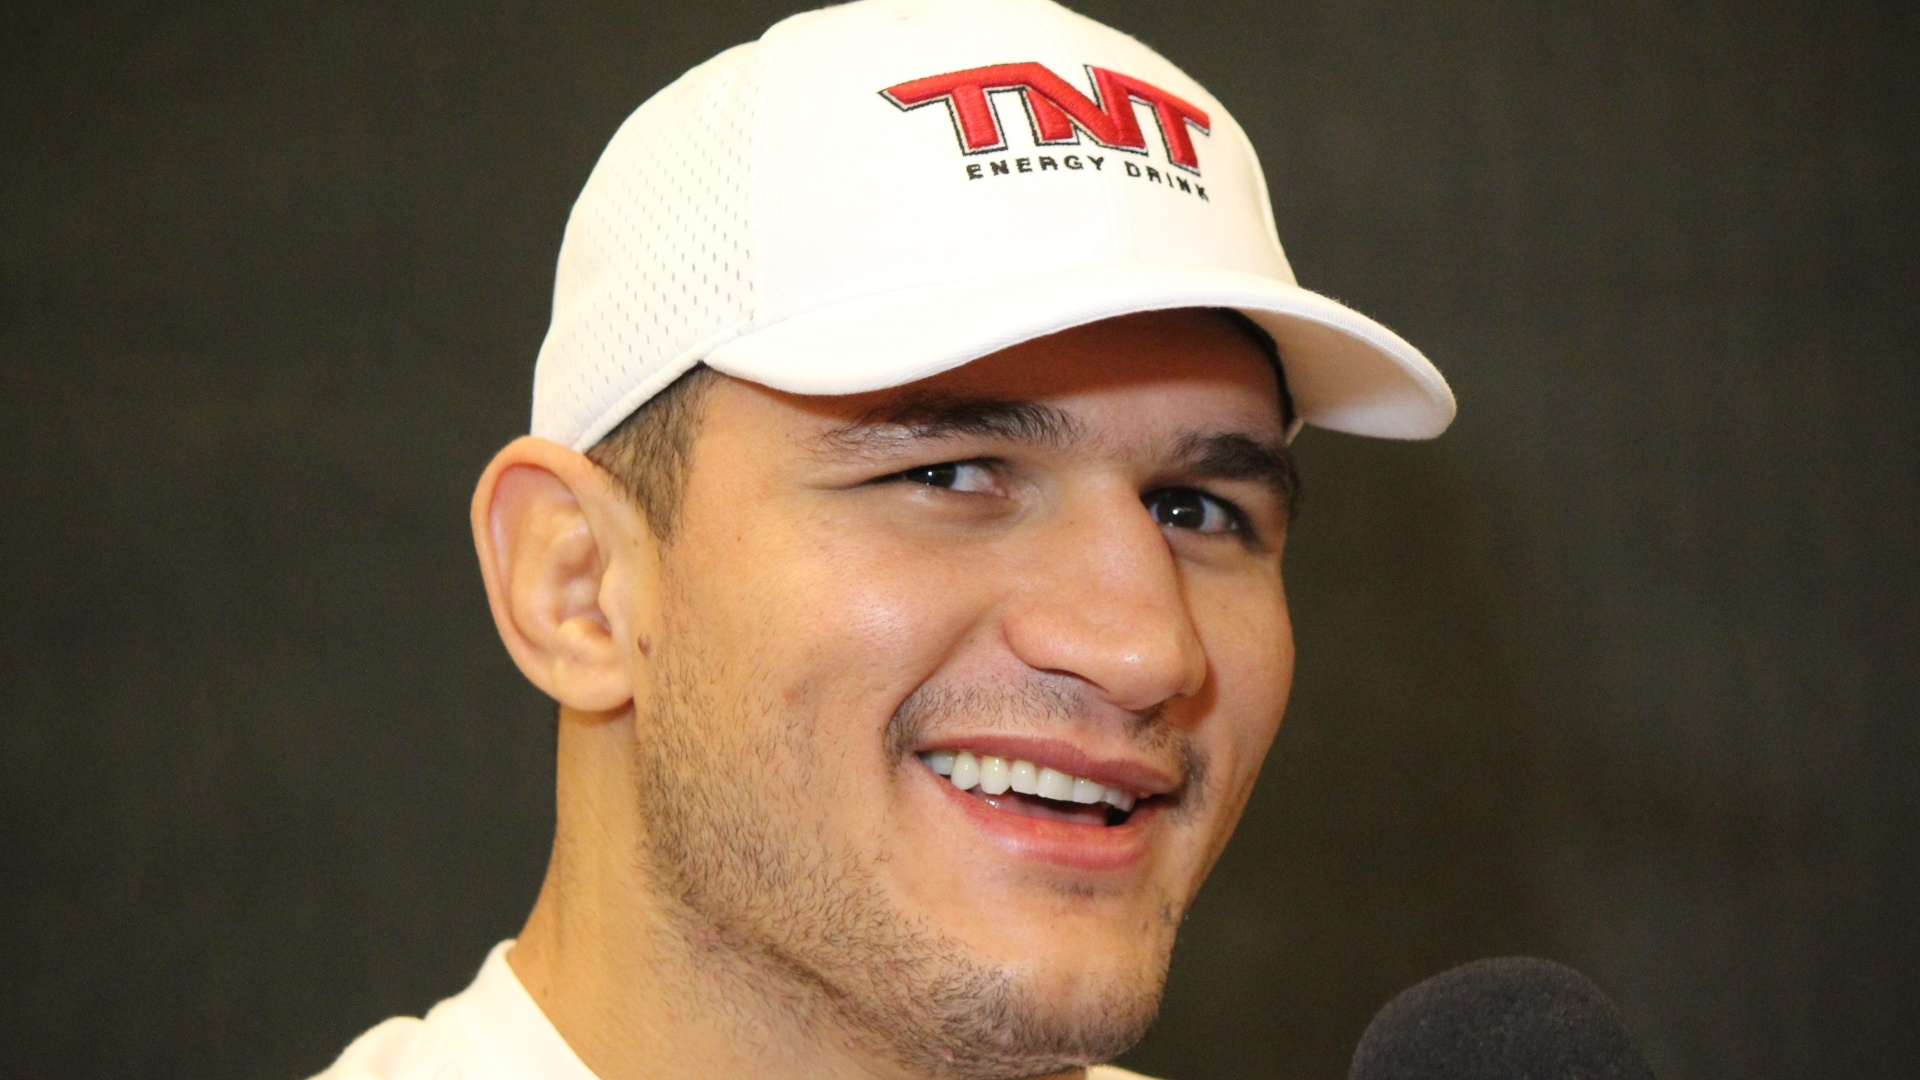 Junior Cigano dos Santos dá entrevista antes do UFC 160